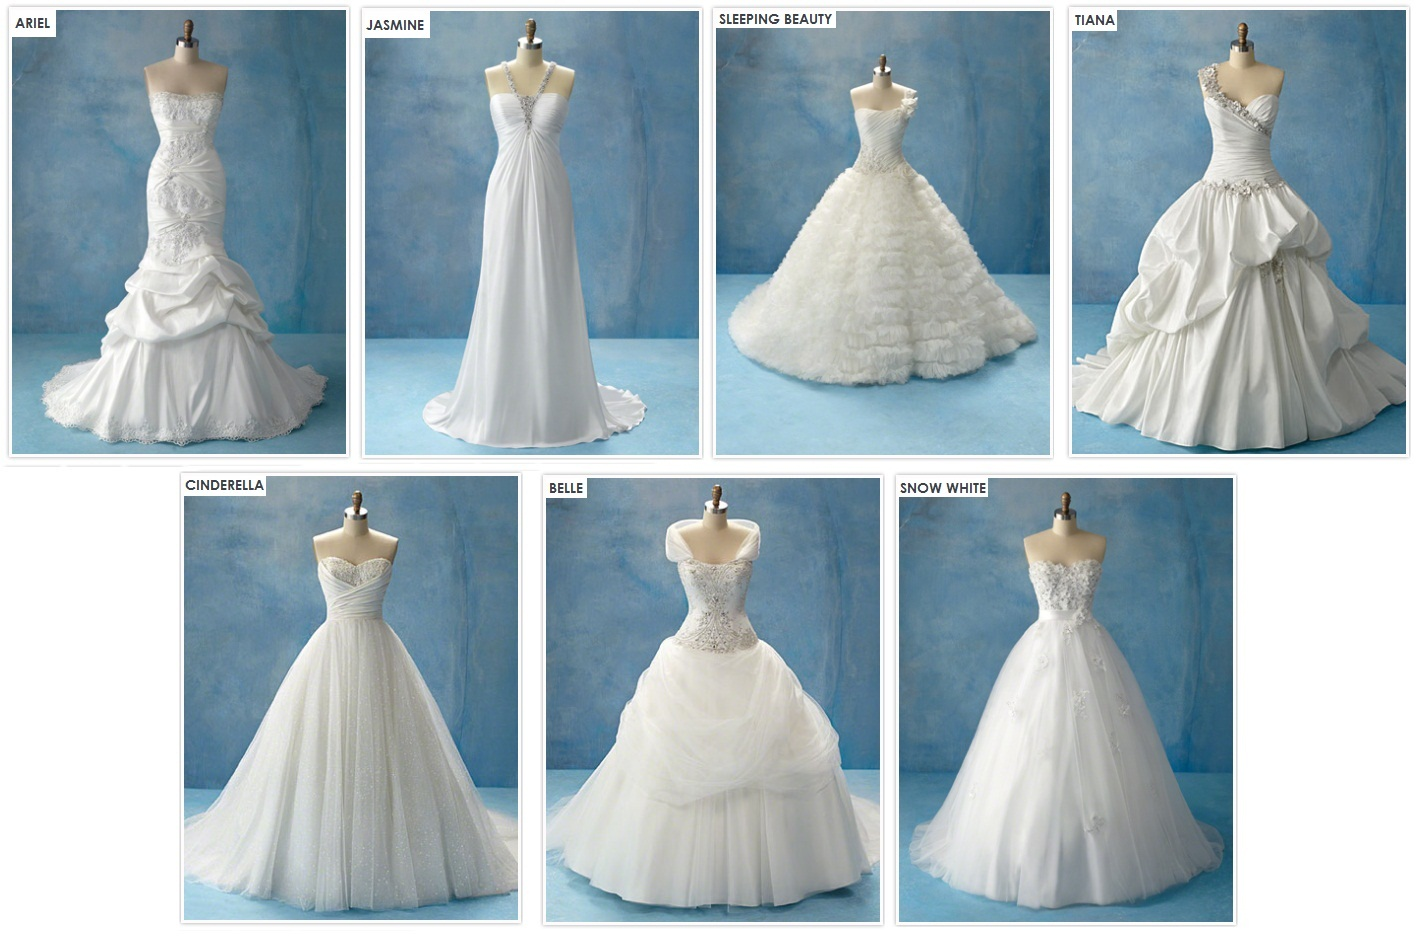 Disney Wedding Dresses | Dressed Up Girl